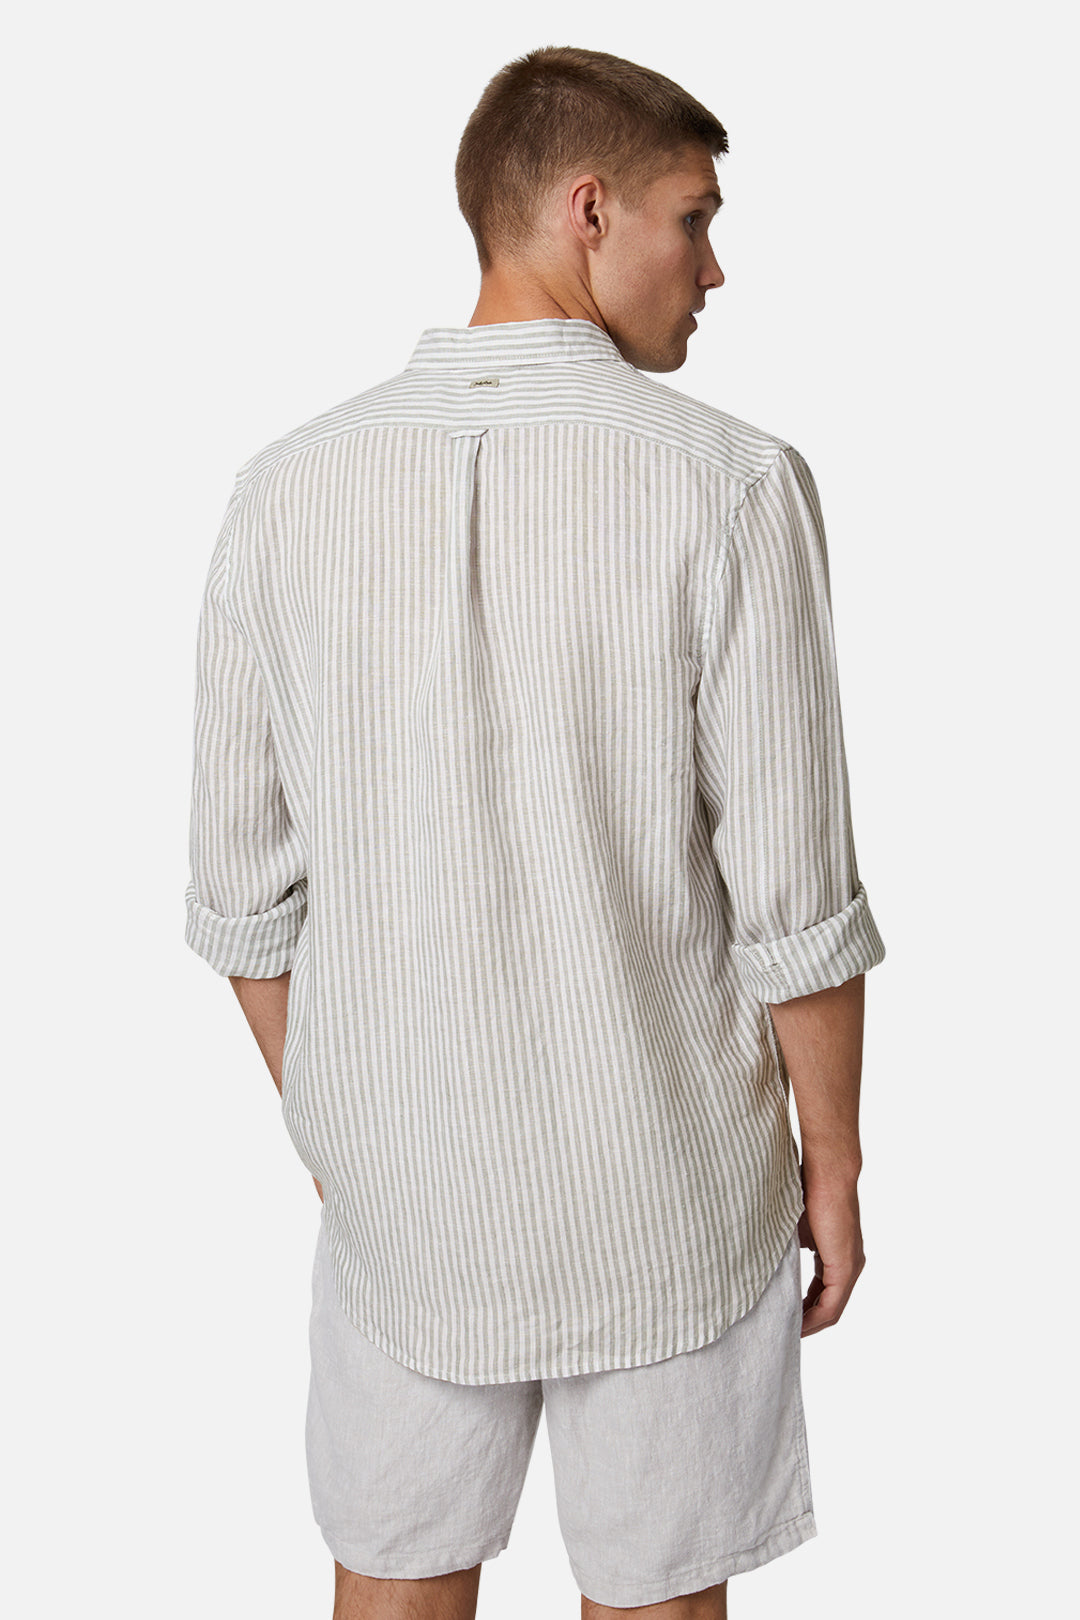 The Southwest Linen L/S Shirt - Wheat White